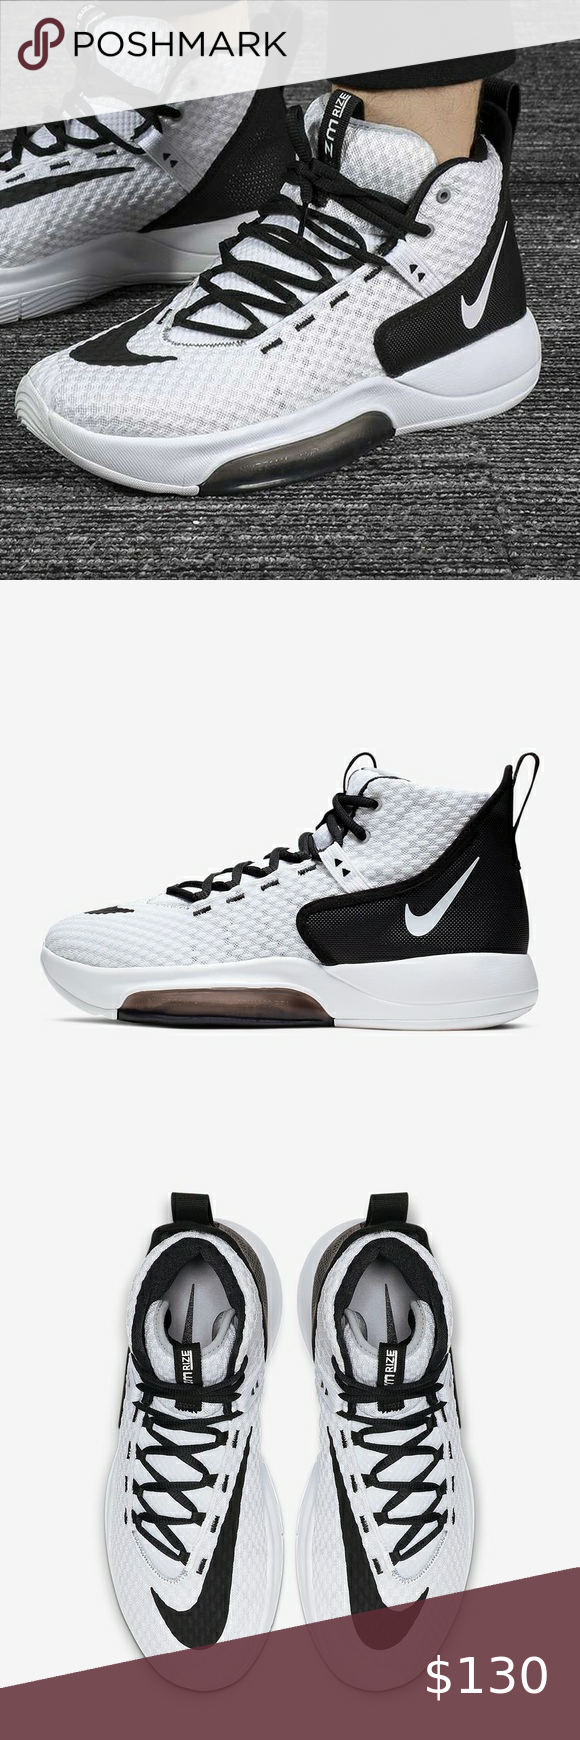 Nike Zoom Rize Tb Basketball Shoes In 2020 Nike Zoom Basketball Shoes Nike Basketball Shoes